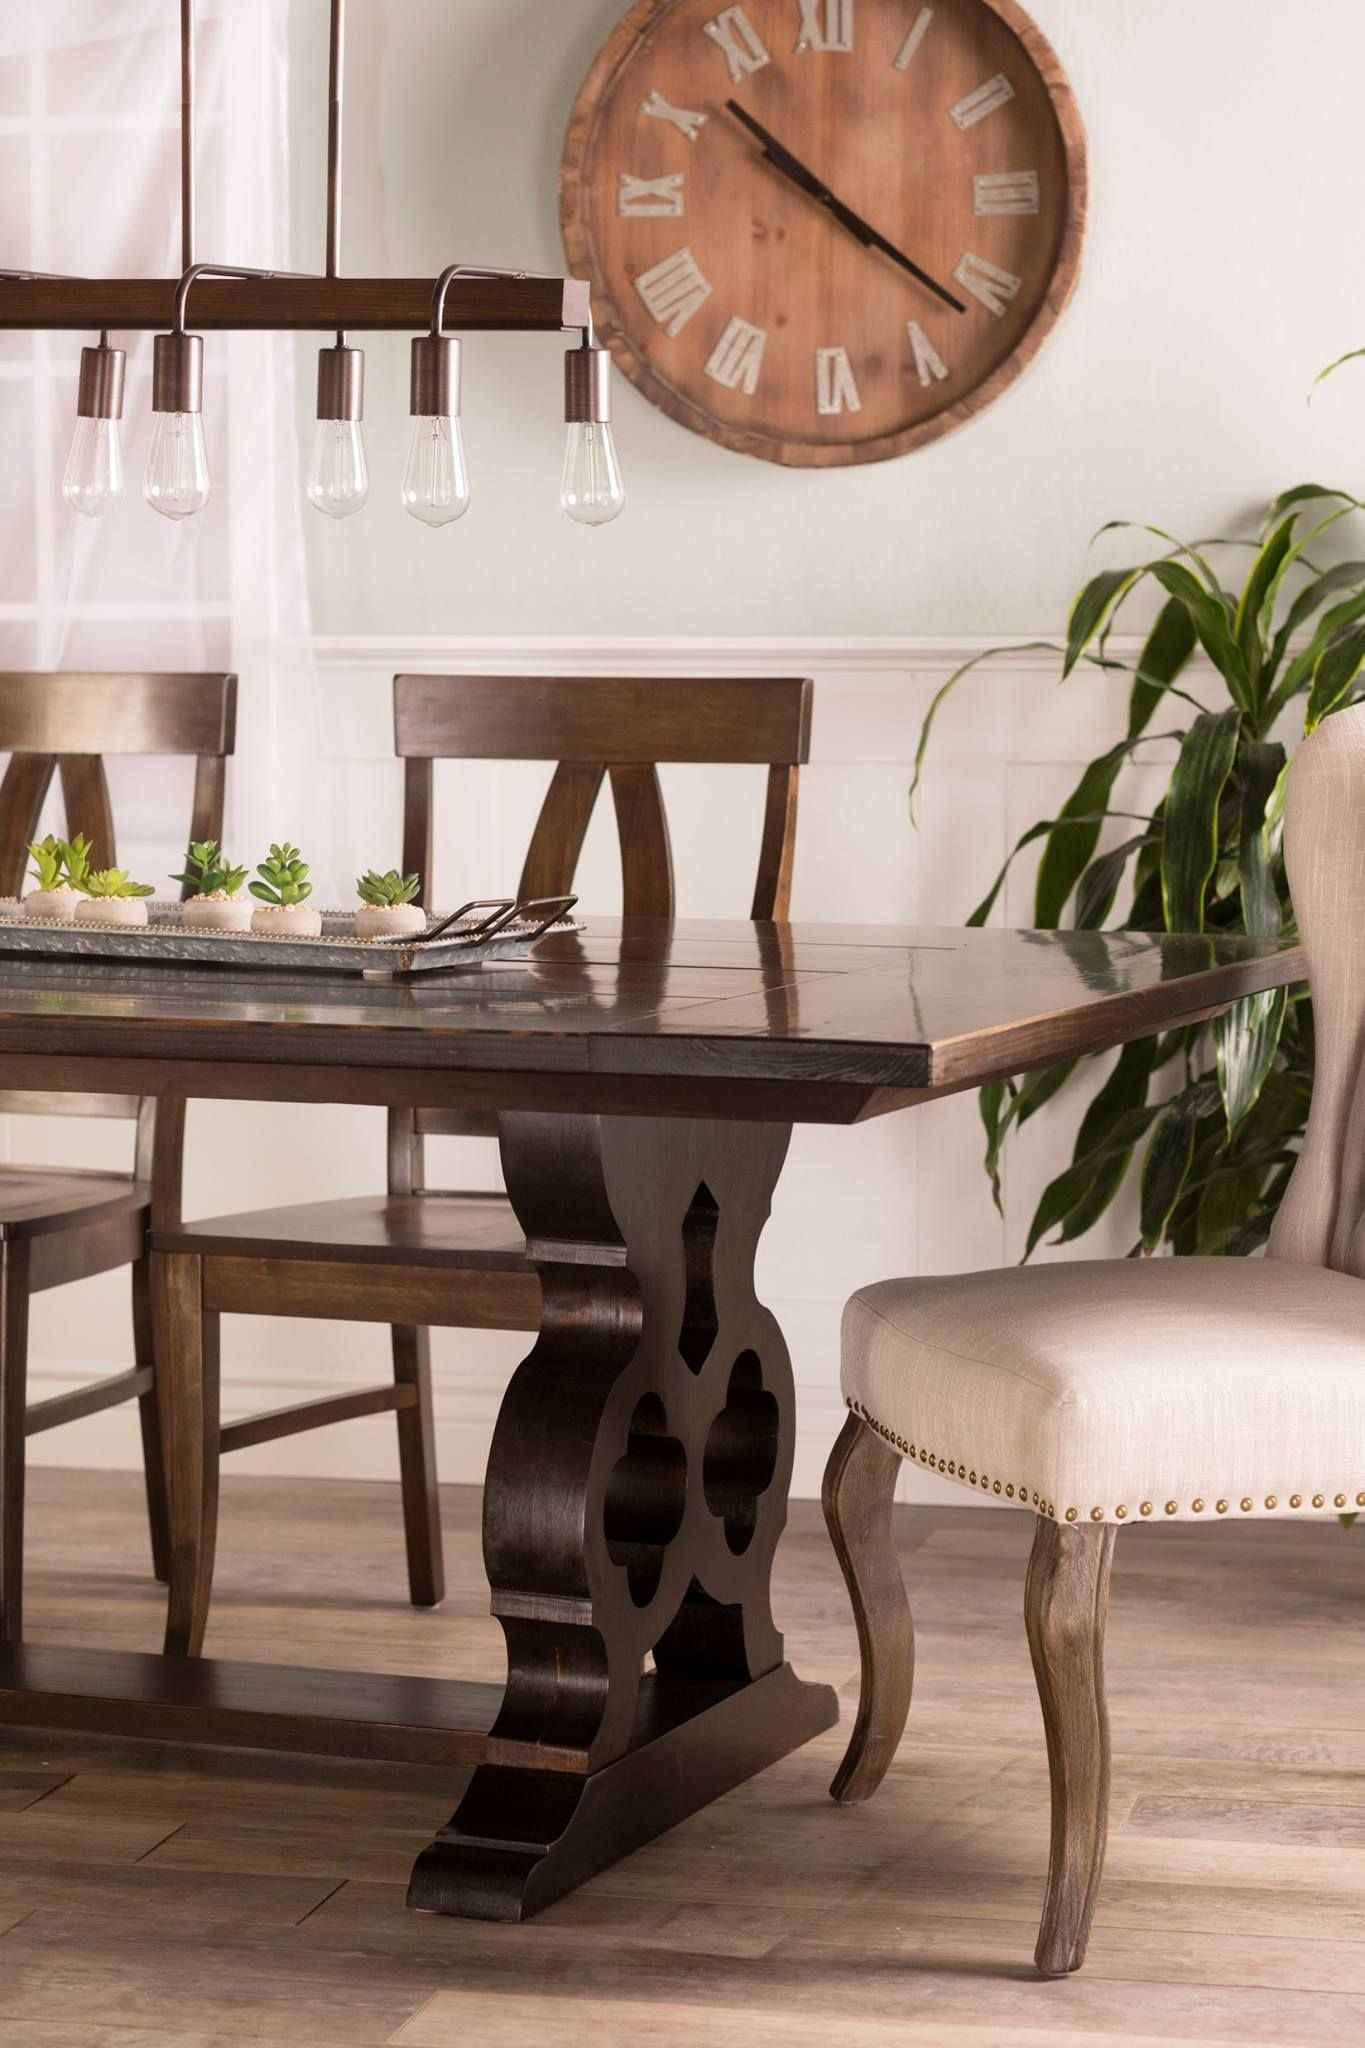 The Handcrafted Solid Wood Grand Carved Pedestal Table Is A Stunning Center Piece In Any Home Furniture Design Your On Our Website